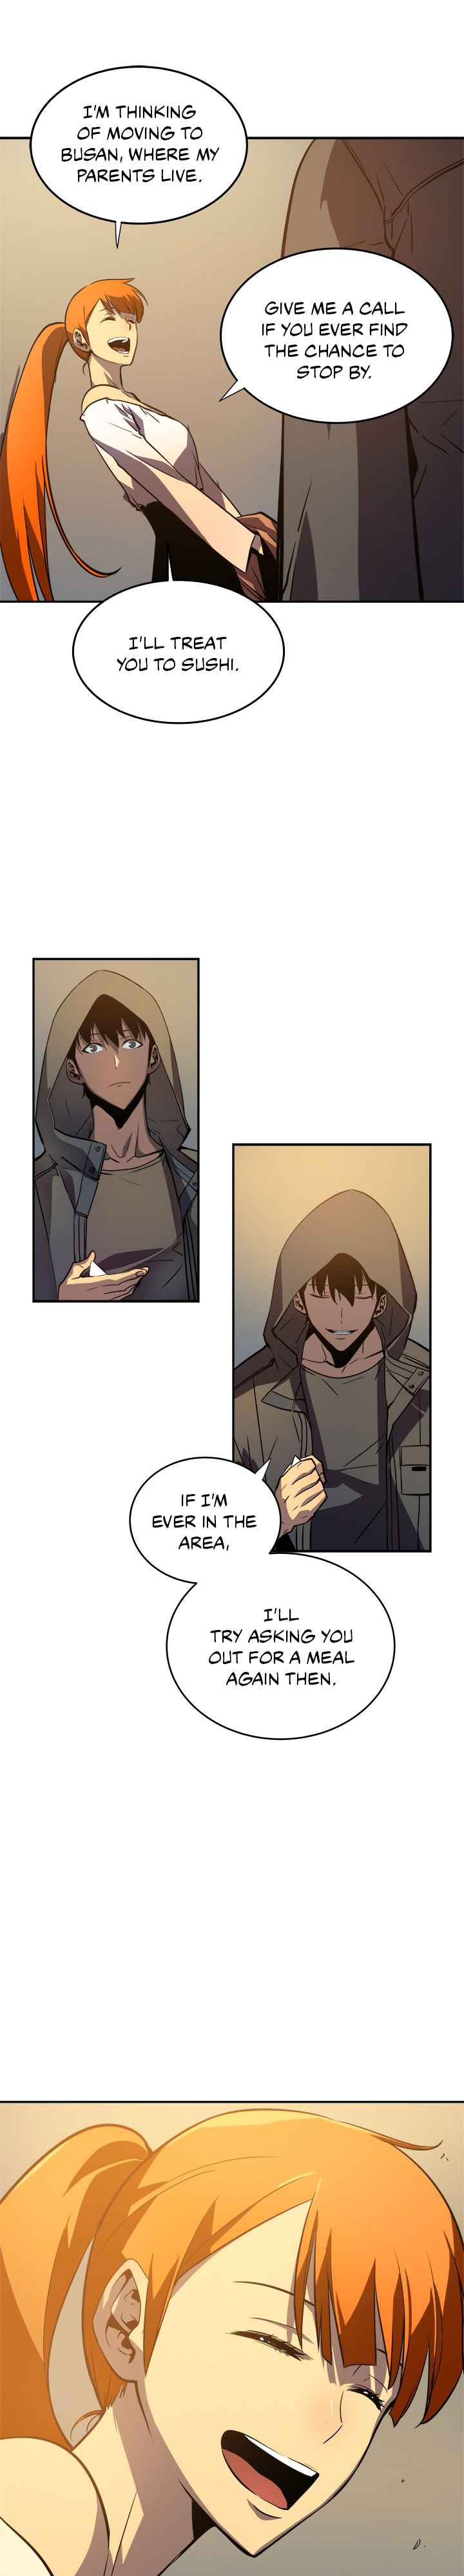 Solo Leveling Chapter 35 Page 7